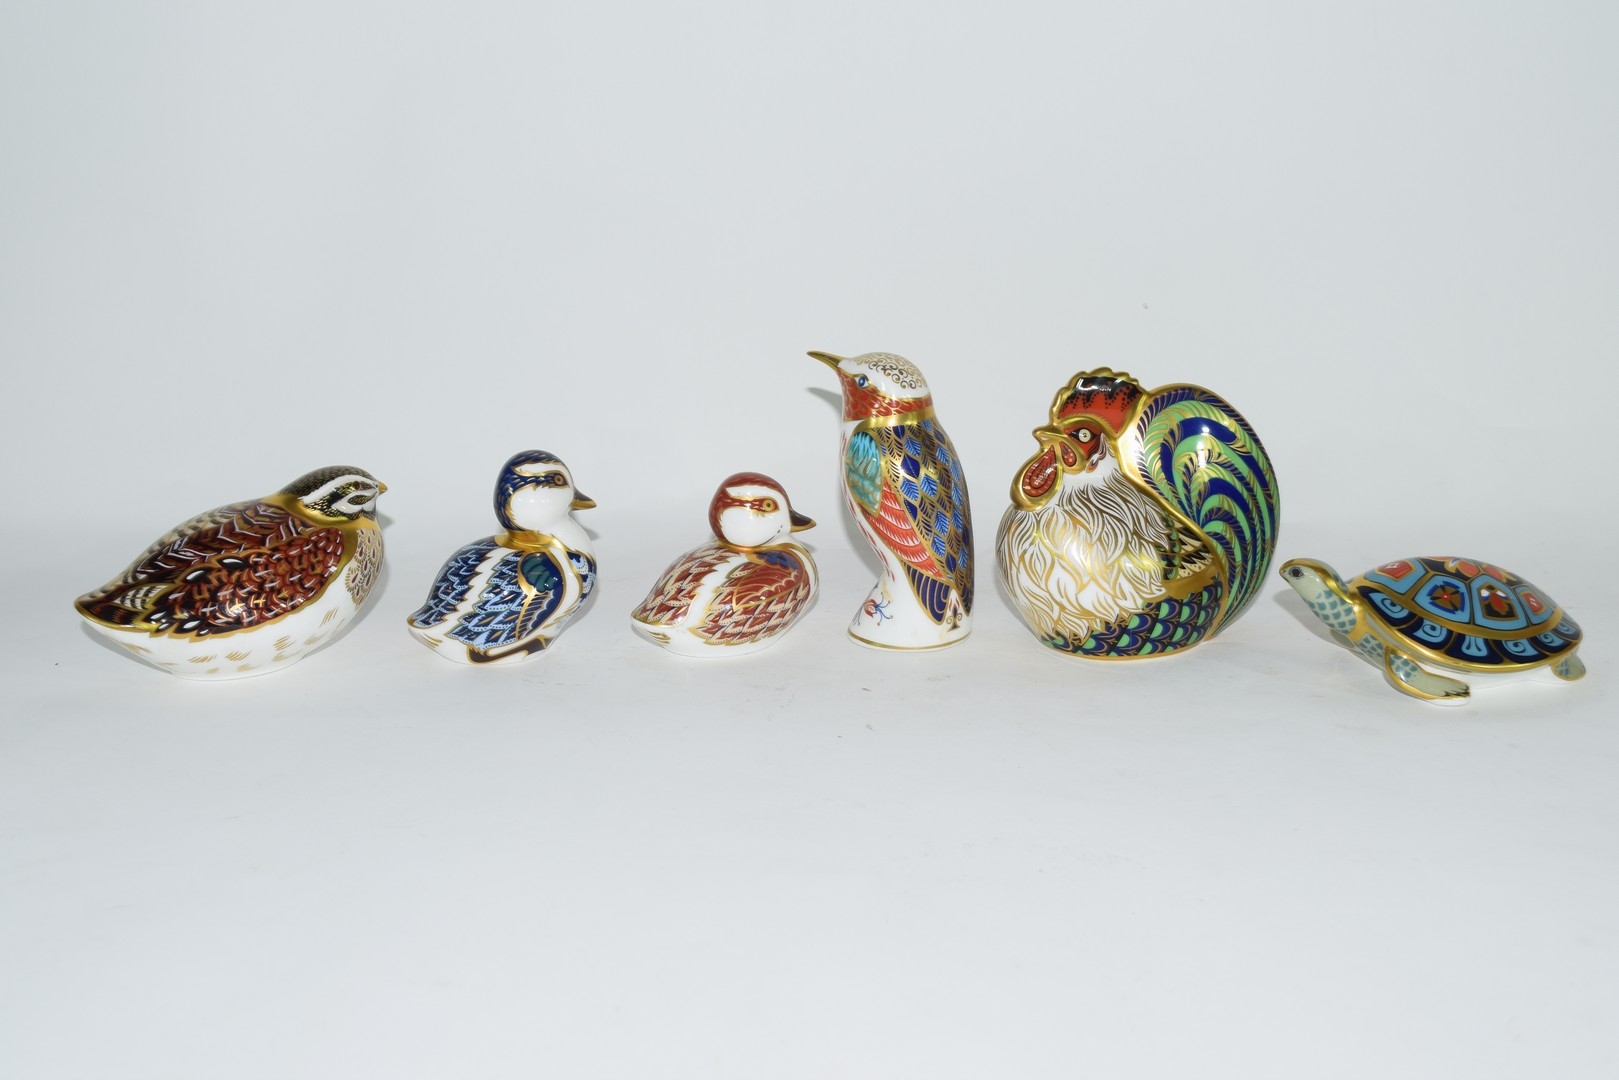 Group of Royal Crown Derby paperweights - Image 2 of 8